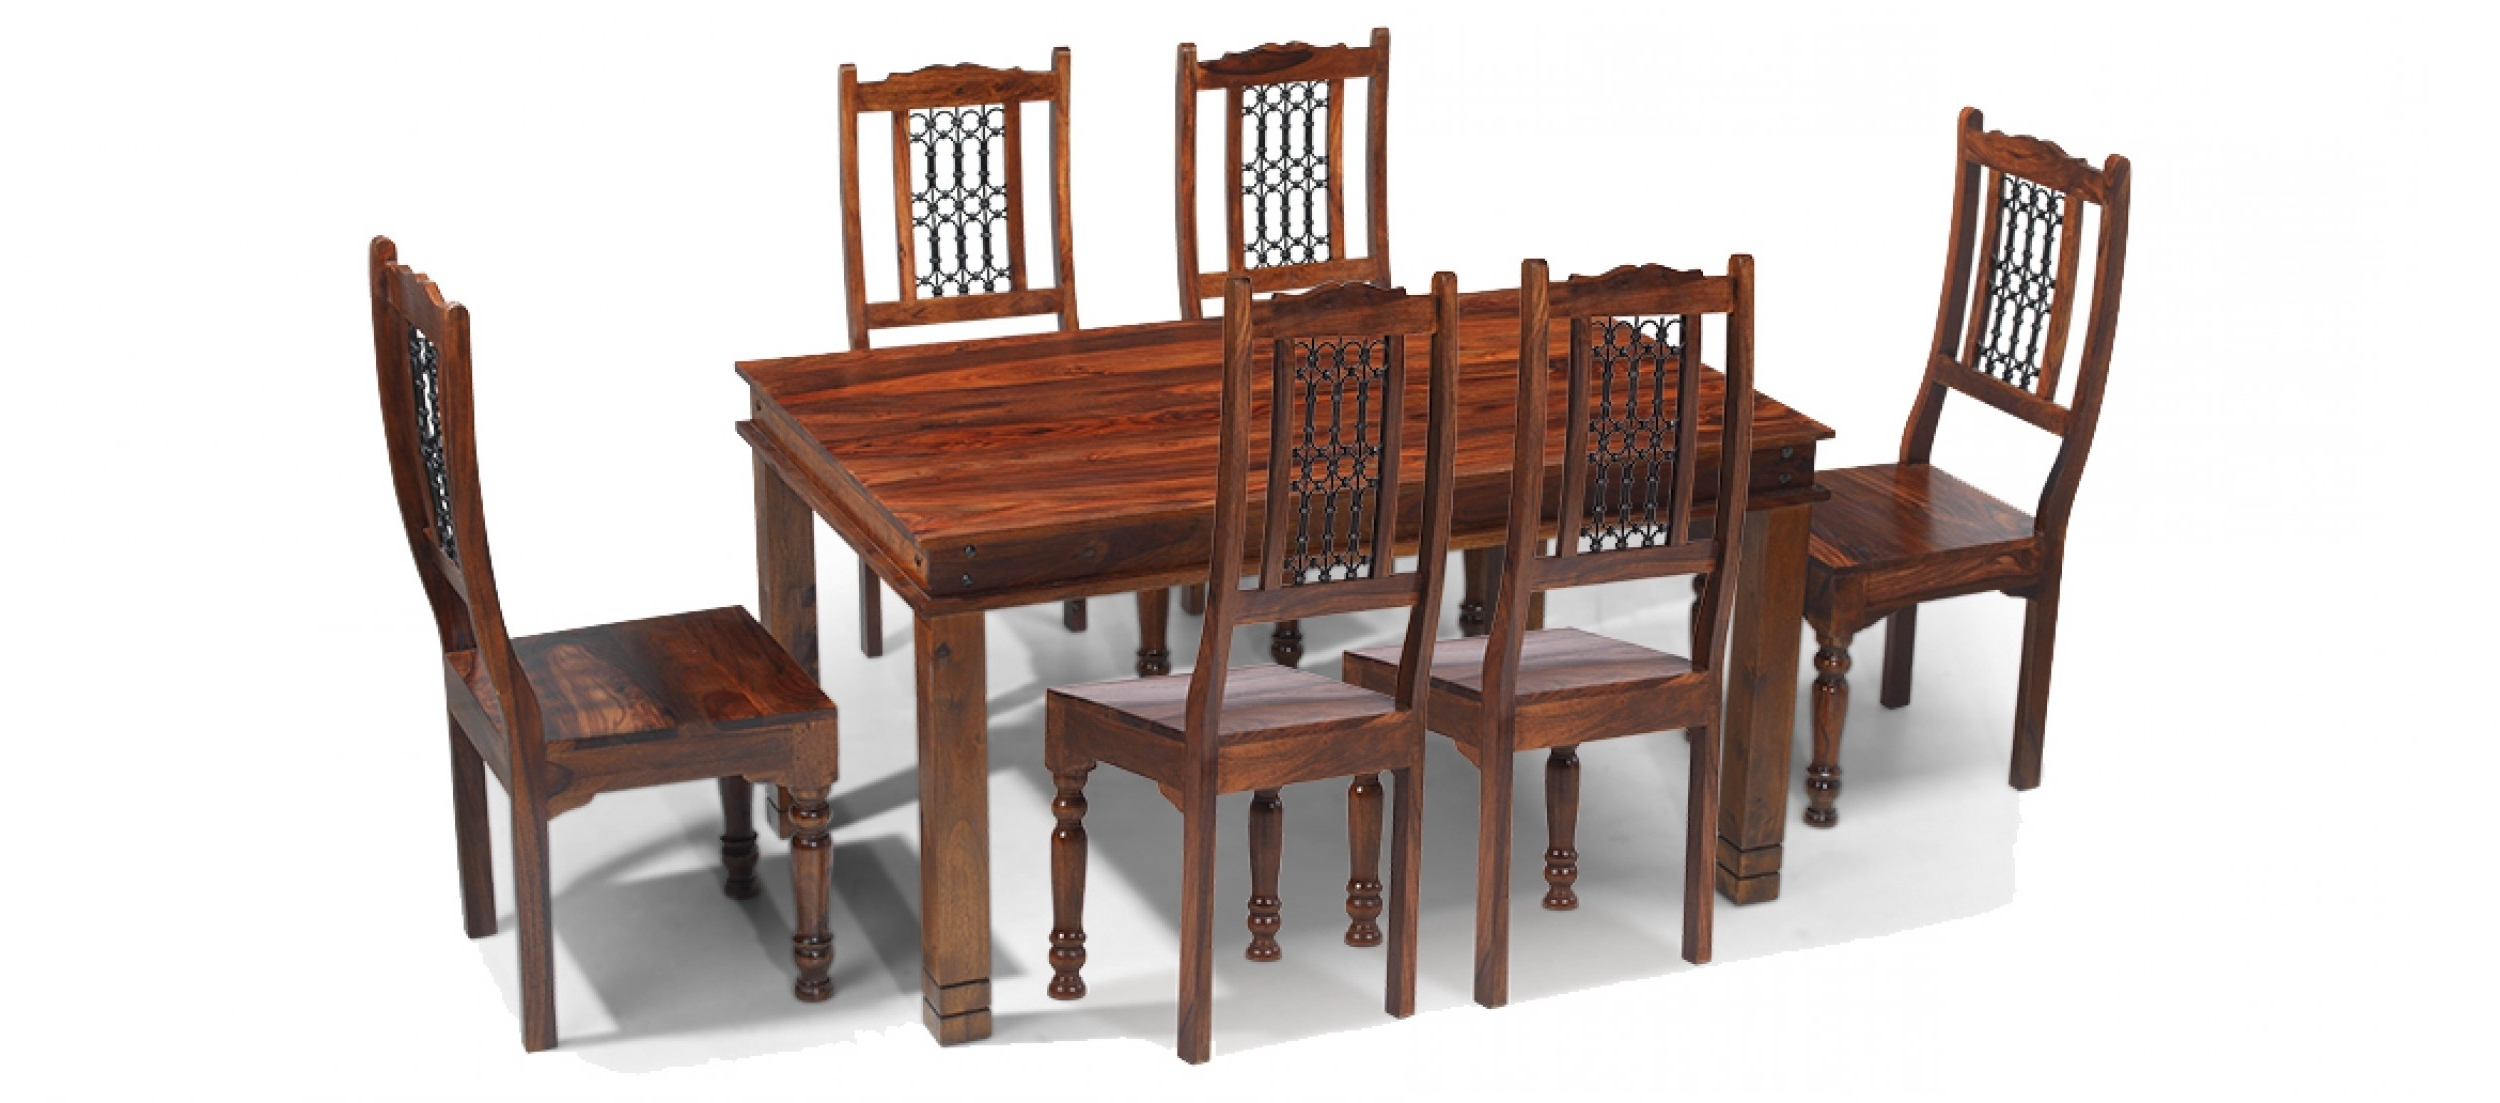 Quercus Living intended for Oak Dining Set 6 Chairs